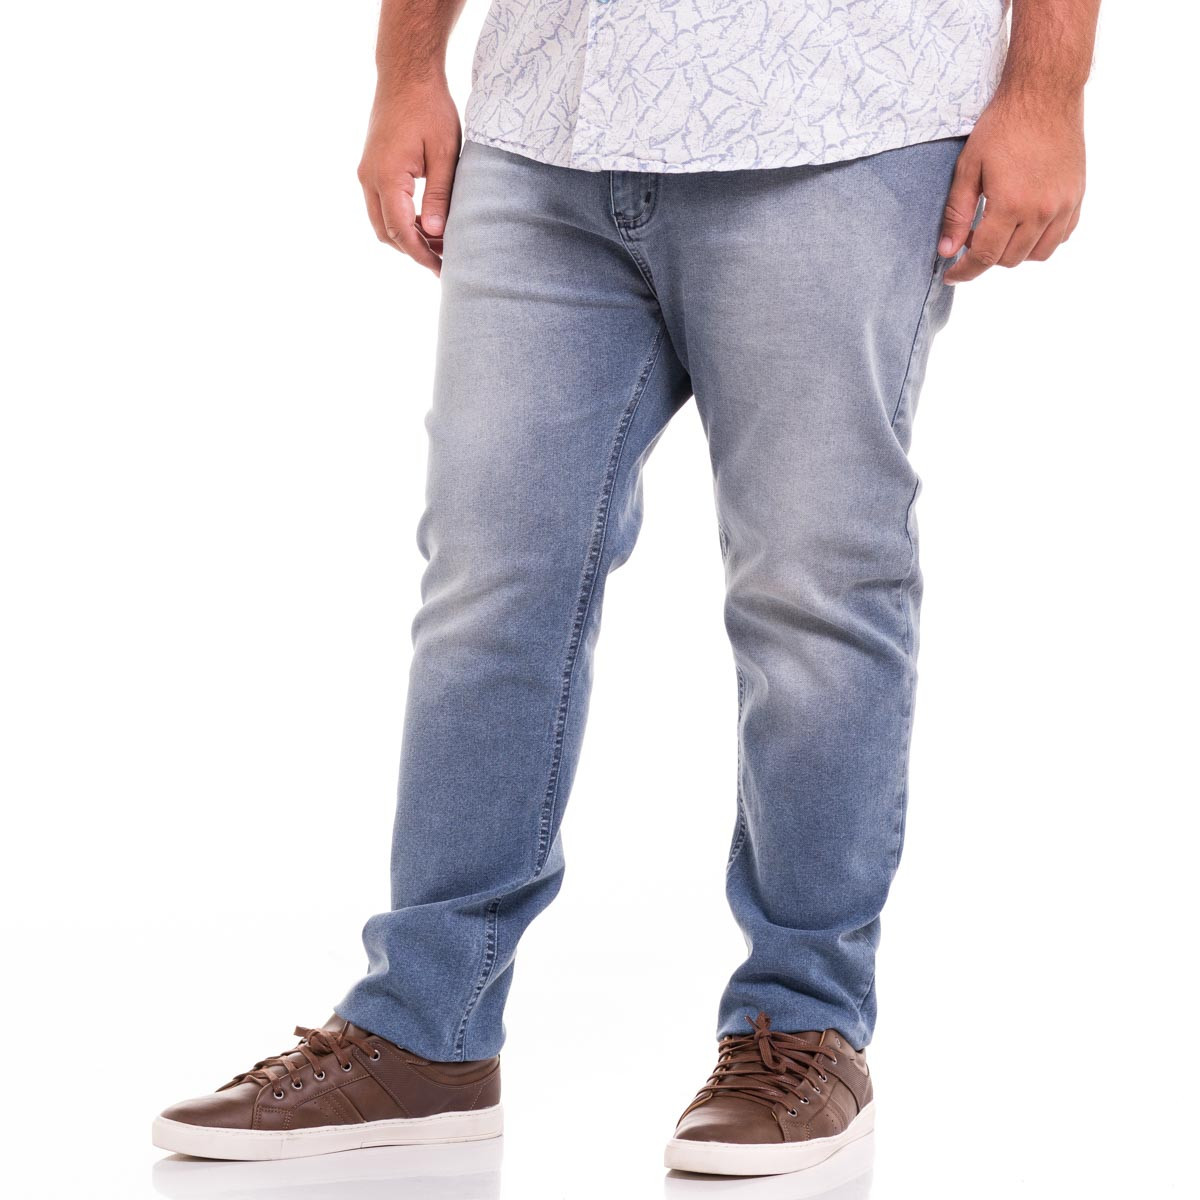 Calça Jeans Plus Size Masculina Black Blue Used